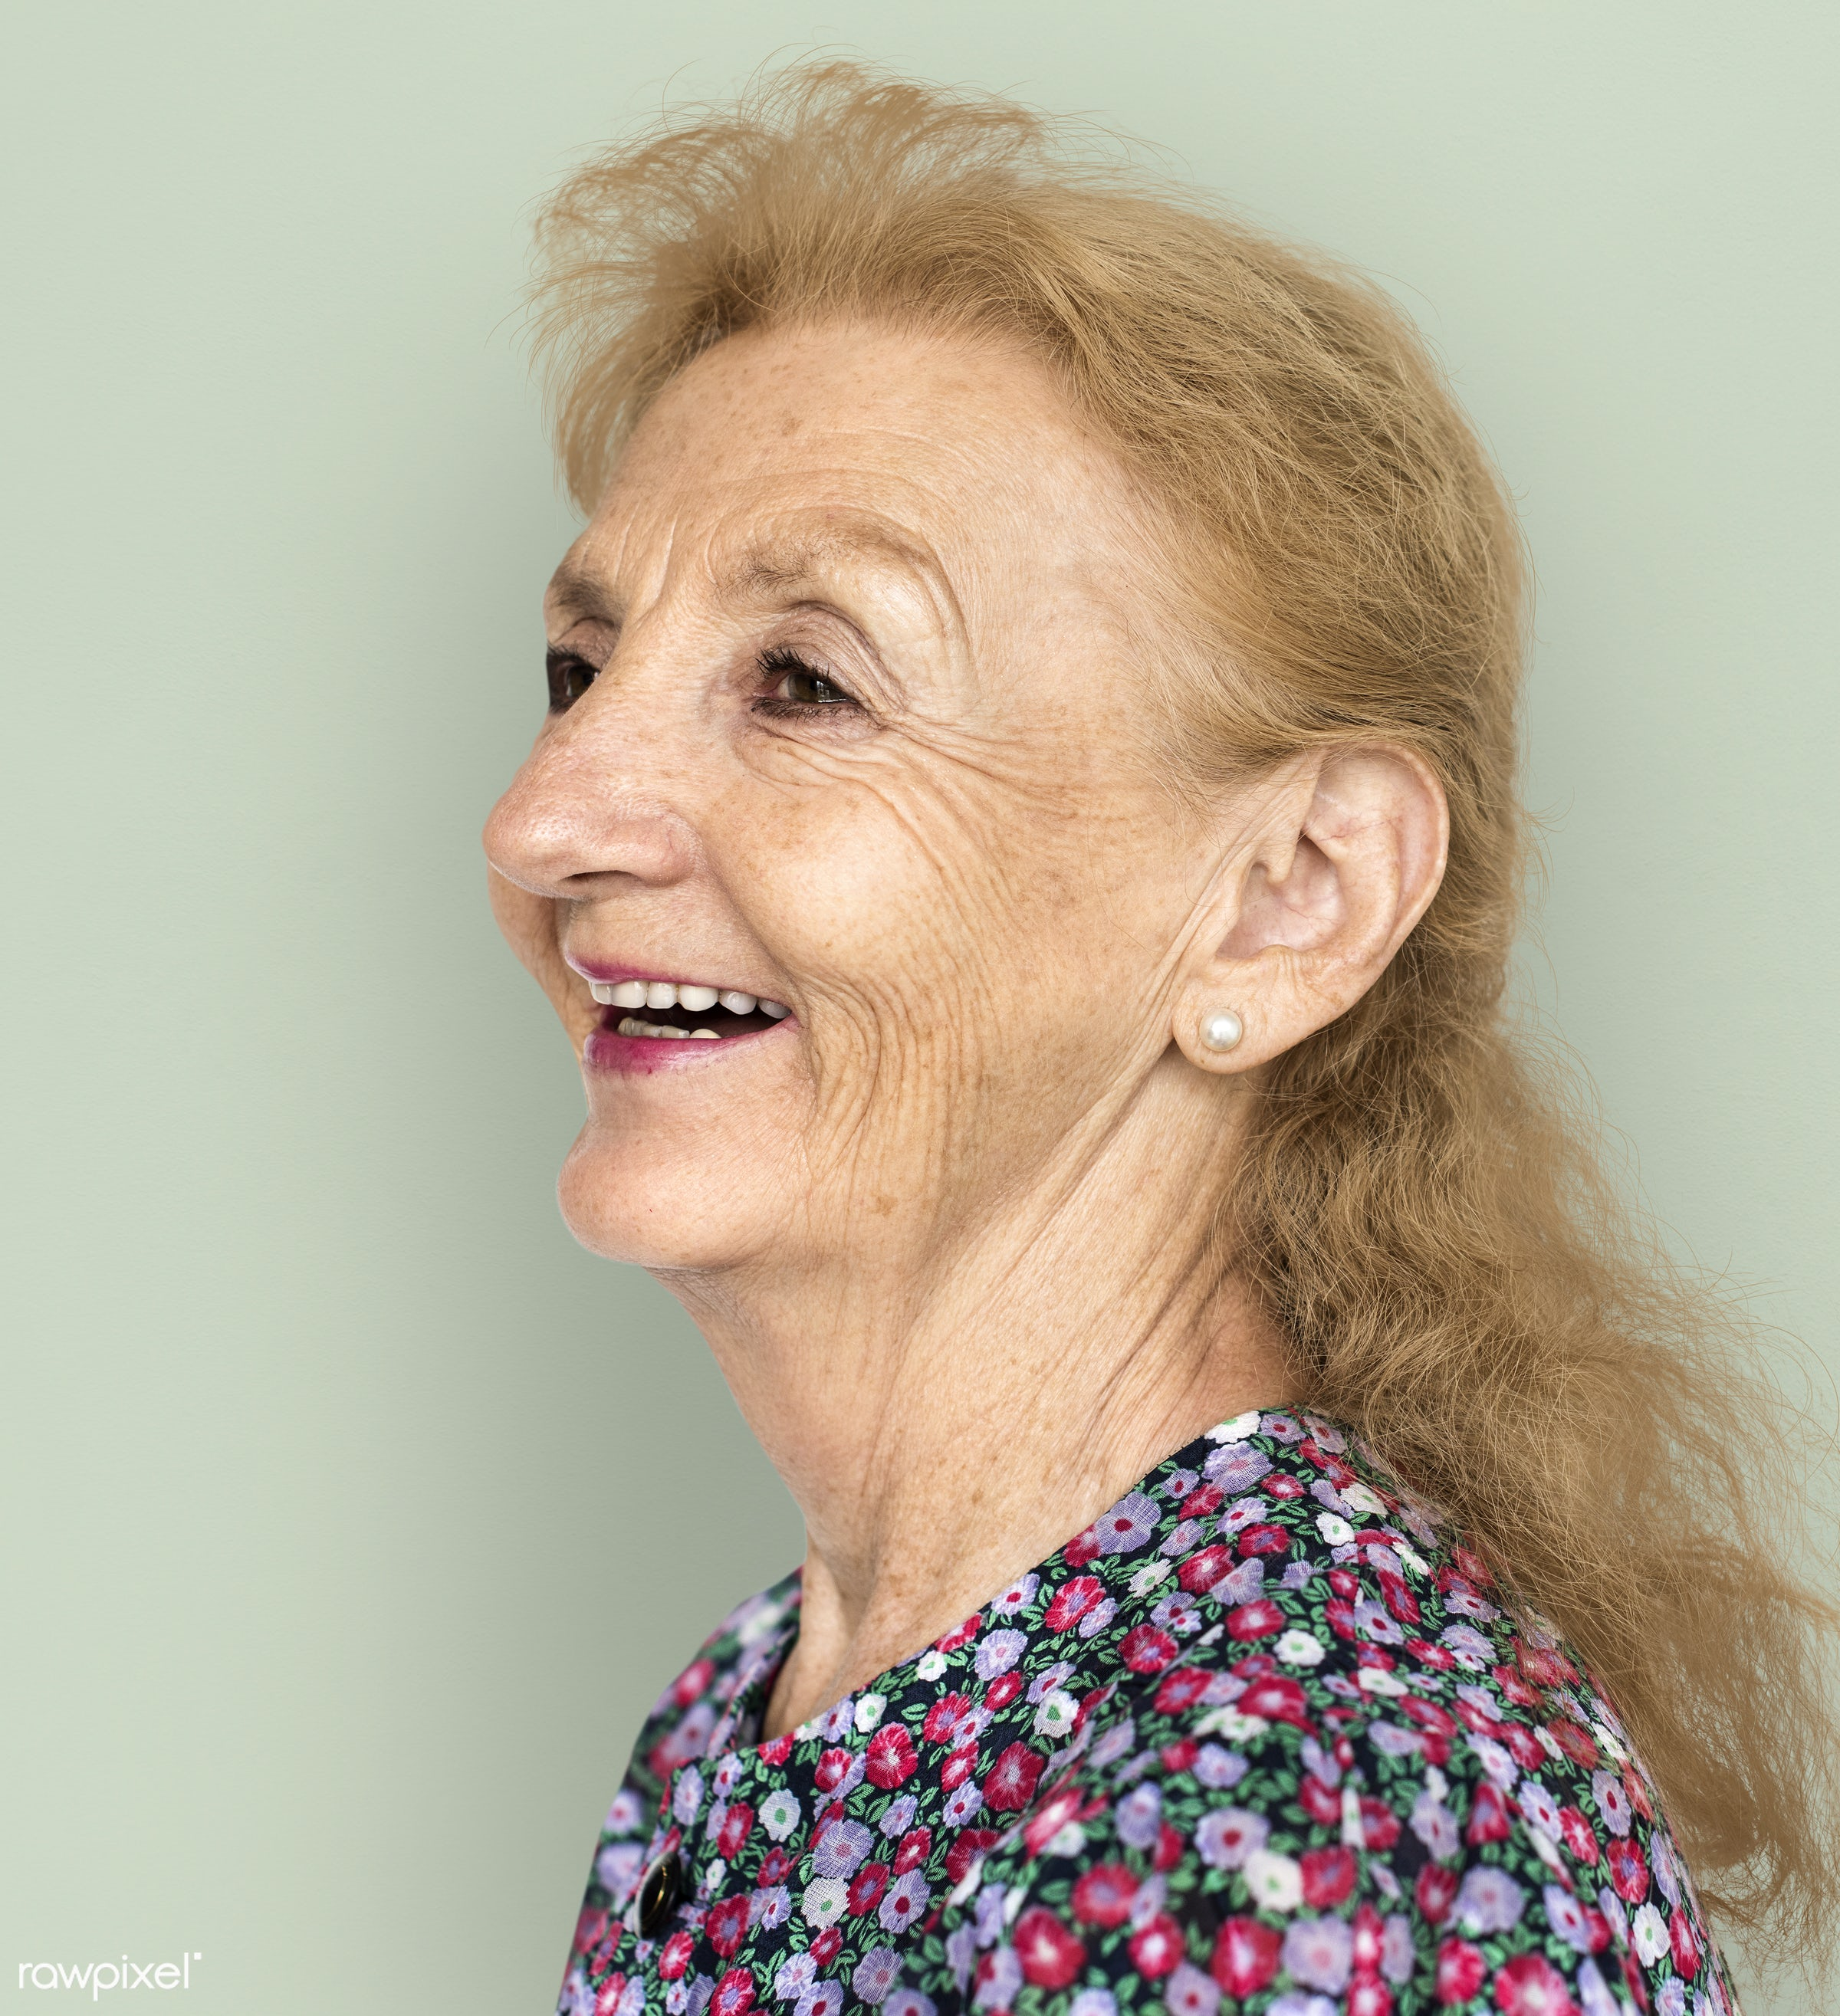 expression, studio, model, person, freedom, relax, optimistic, people, caucasian, laughing, retirement, woman, casual,...